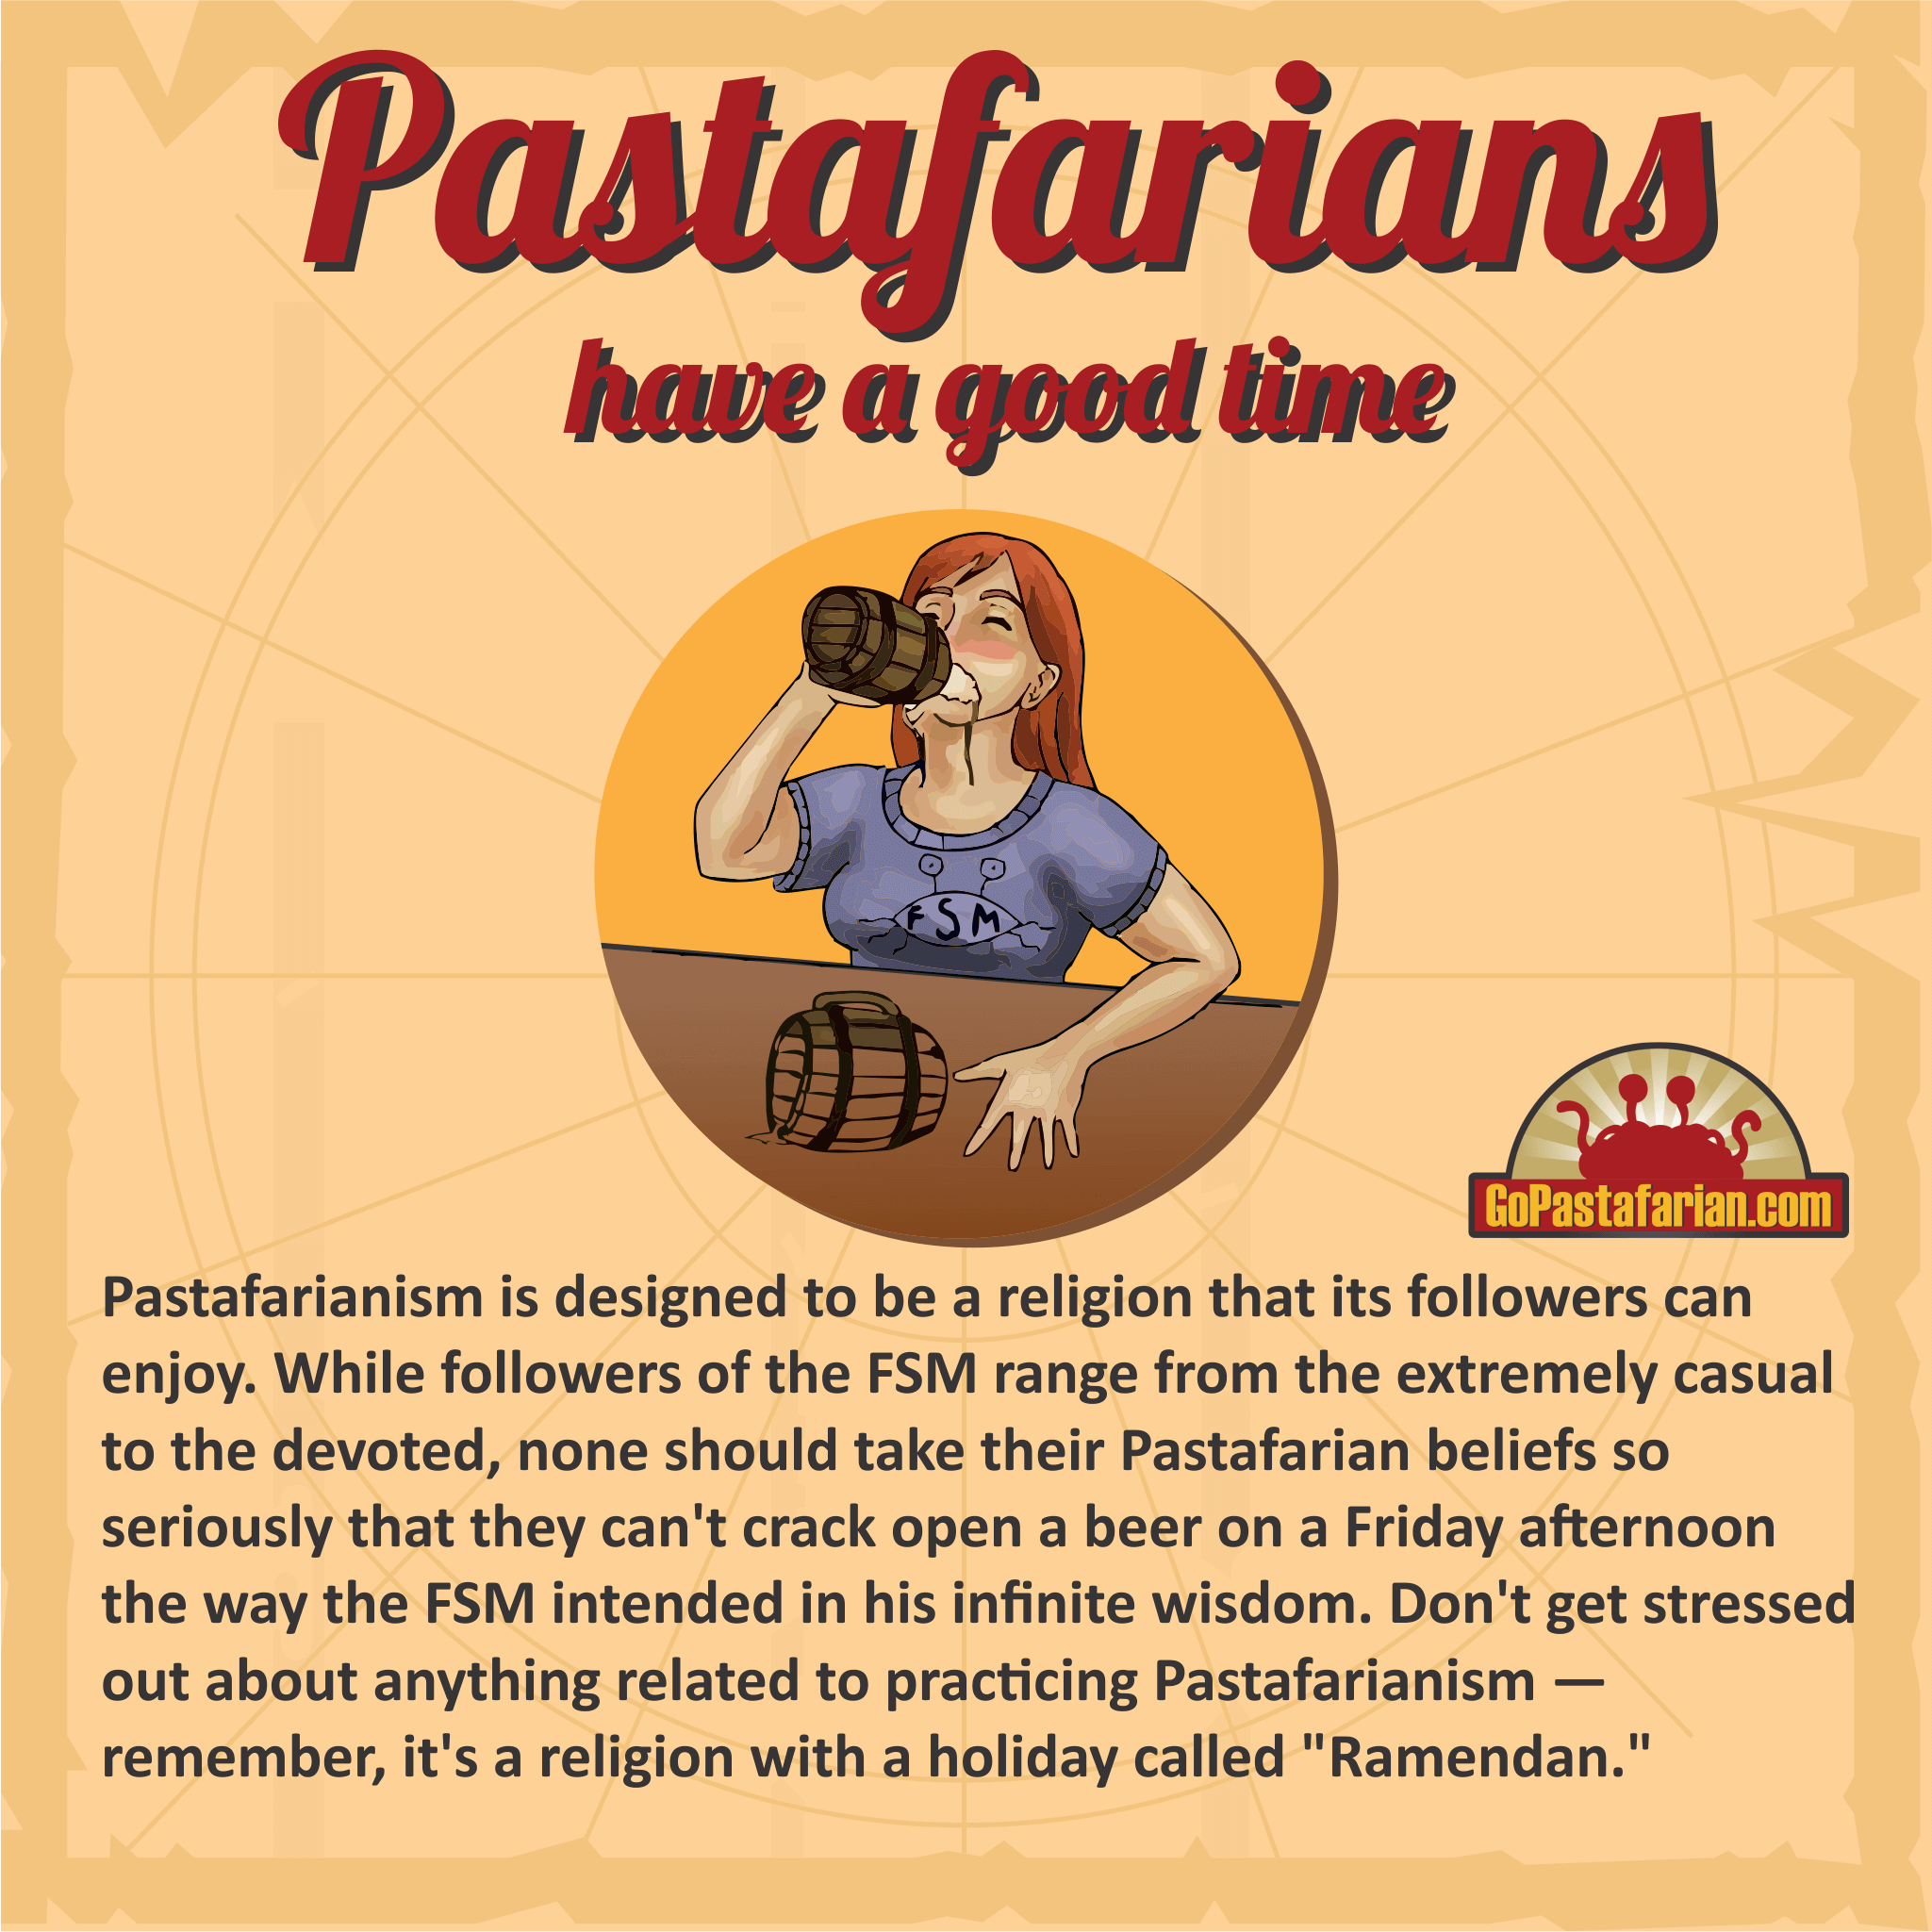 Pastafarians drinking beer and enjoying their religion Pastafarianism